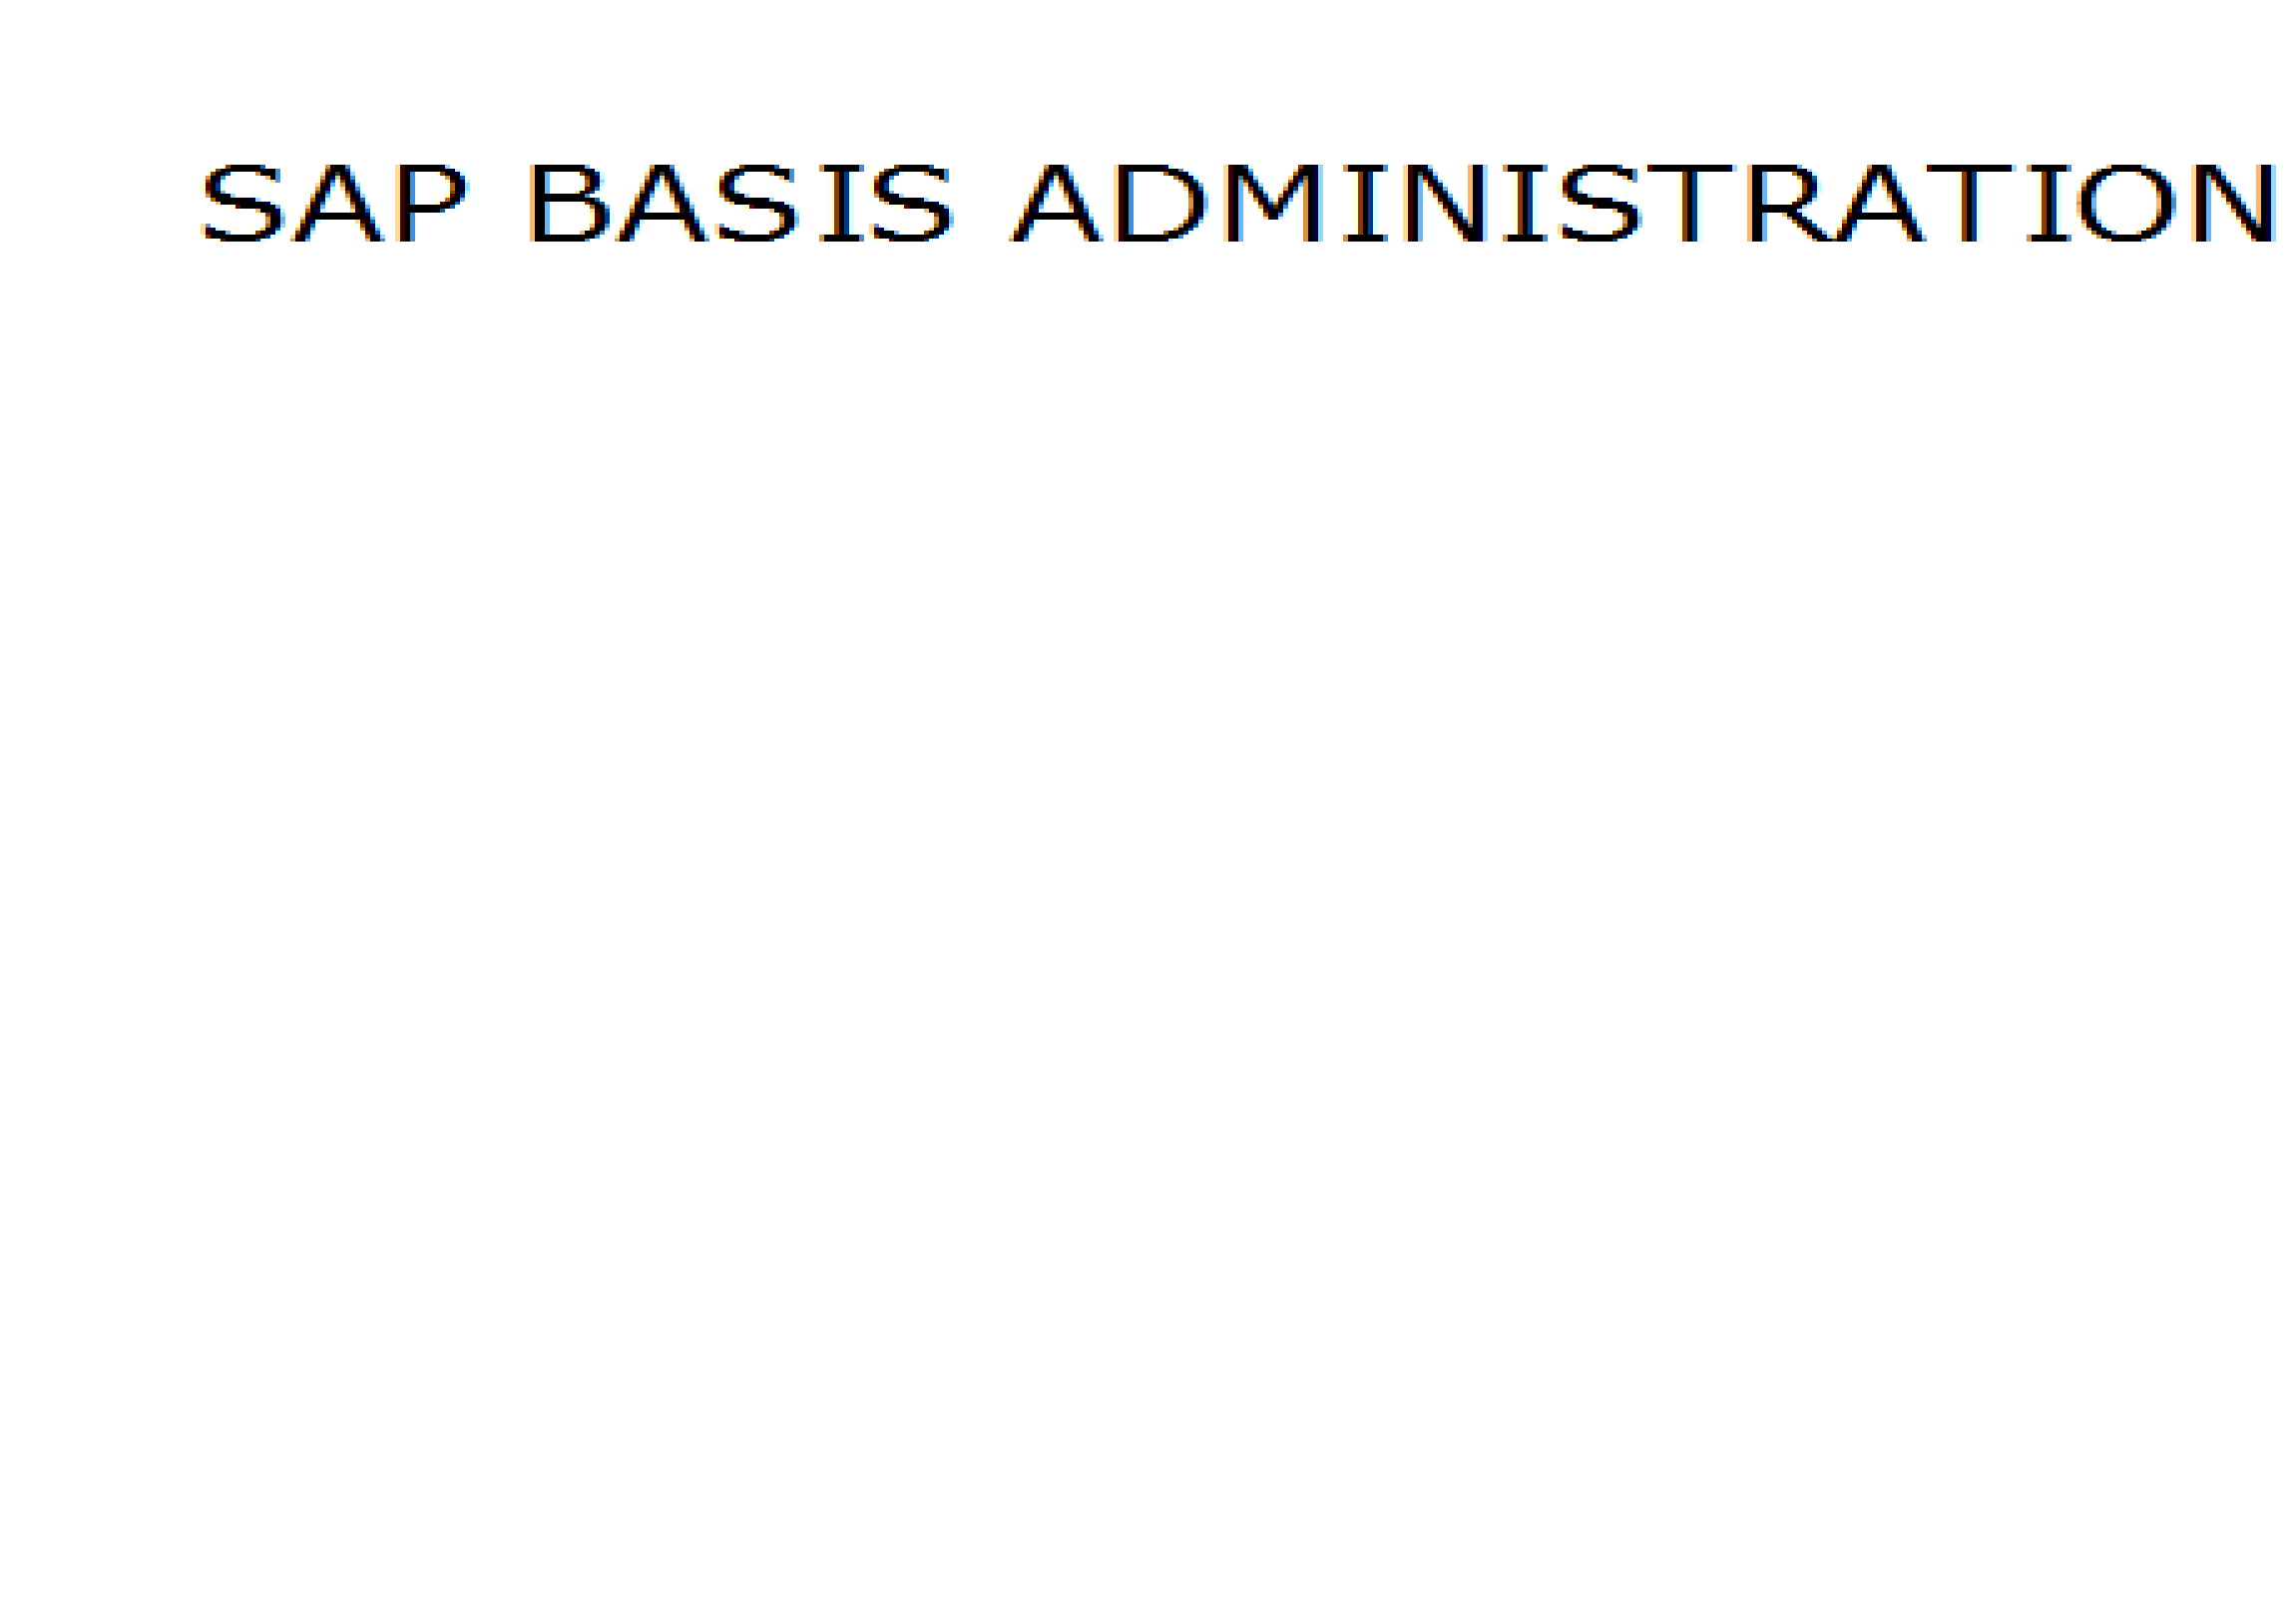 do all do all assignment related to Sap Basis technology